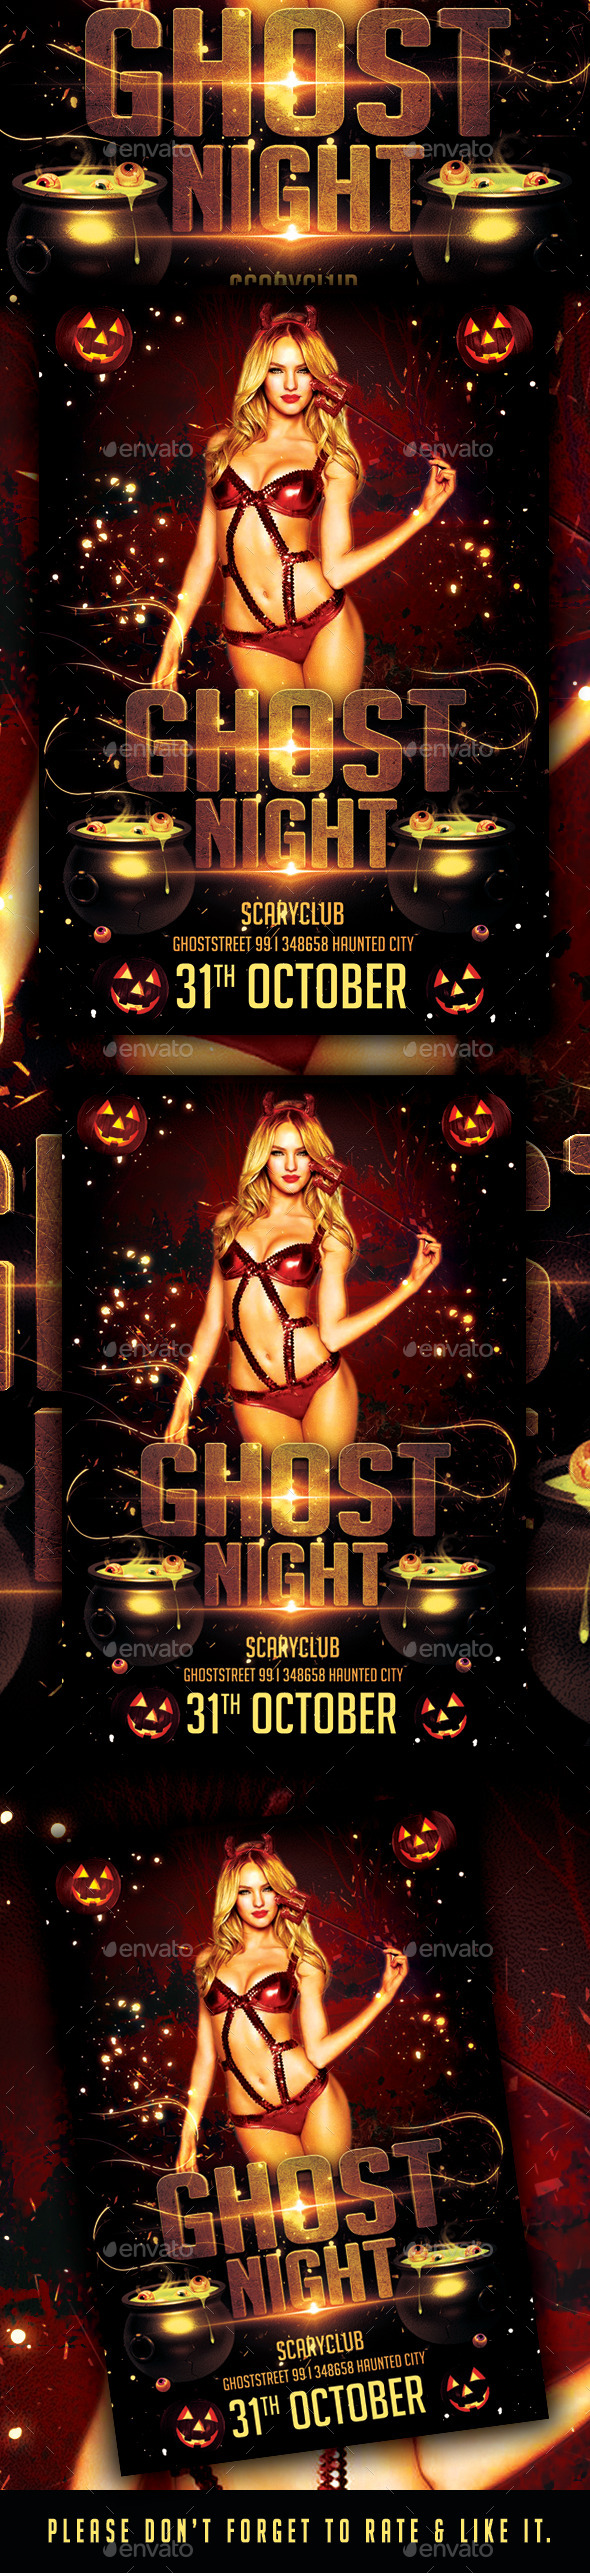 Ghost Night Party Flyer  - Flyers Print Templates